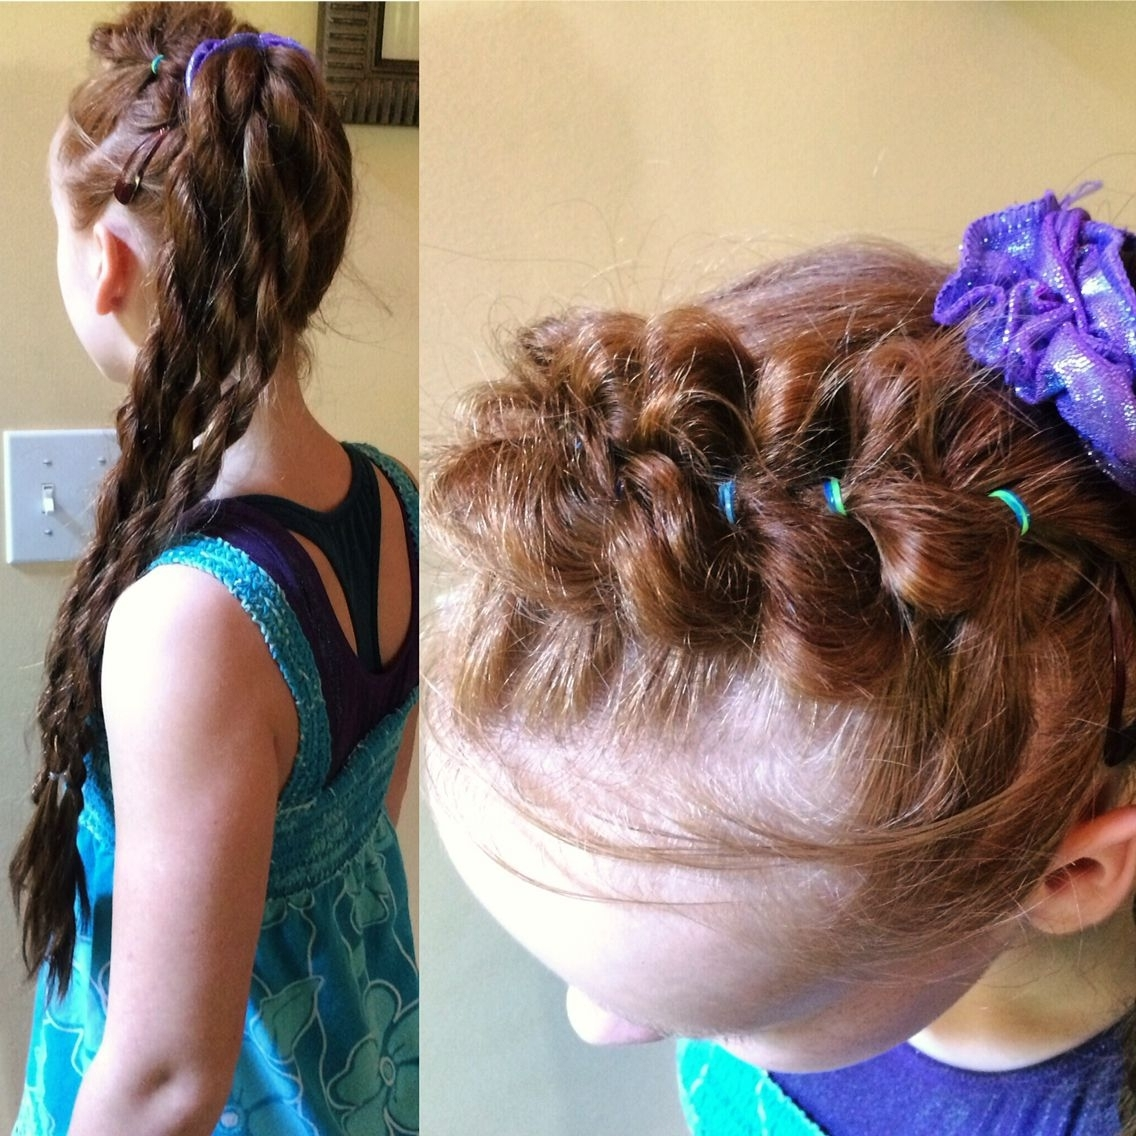 A Cute Pull Through Braided Headband Into A Side Pony With 4 Rope Within Latest Braided Headband And Twisted Side Pony Hairstyles (View 1 of 20)